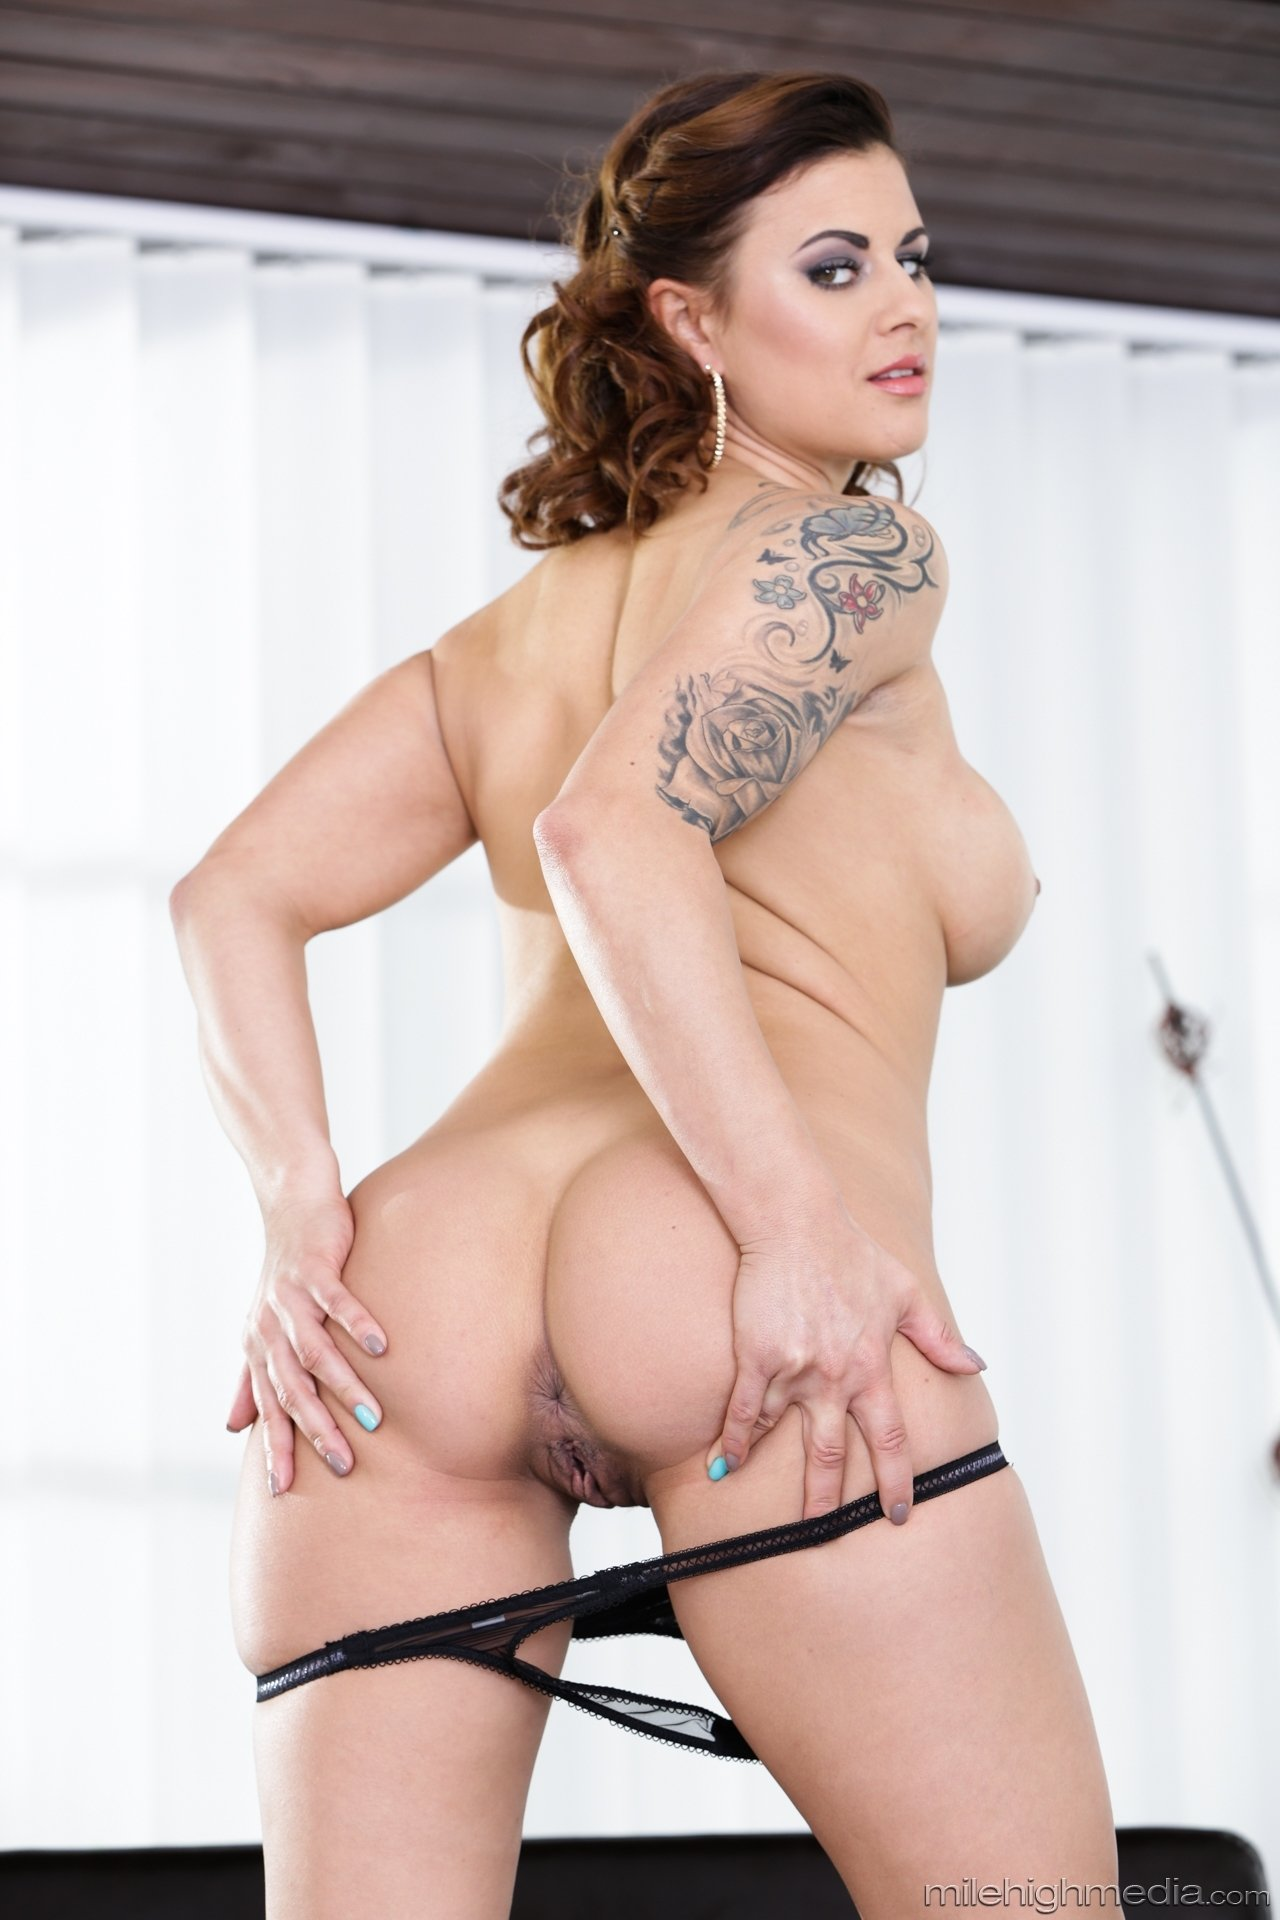 Chanelmiller some private and free chat bigass shegotass info